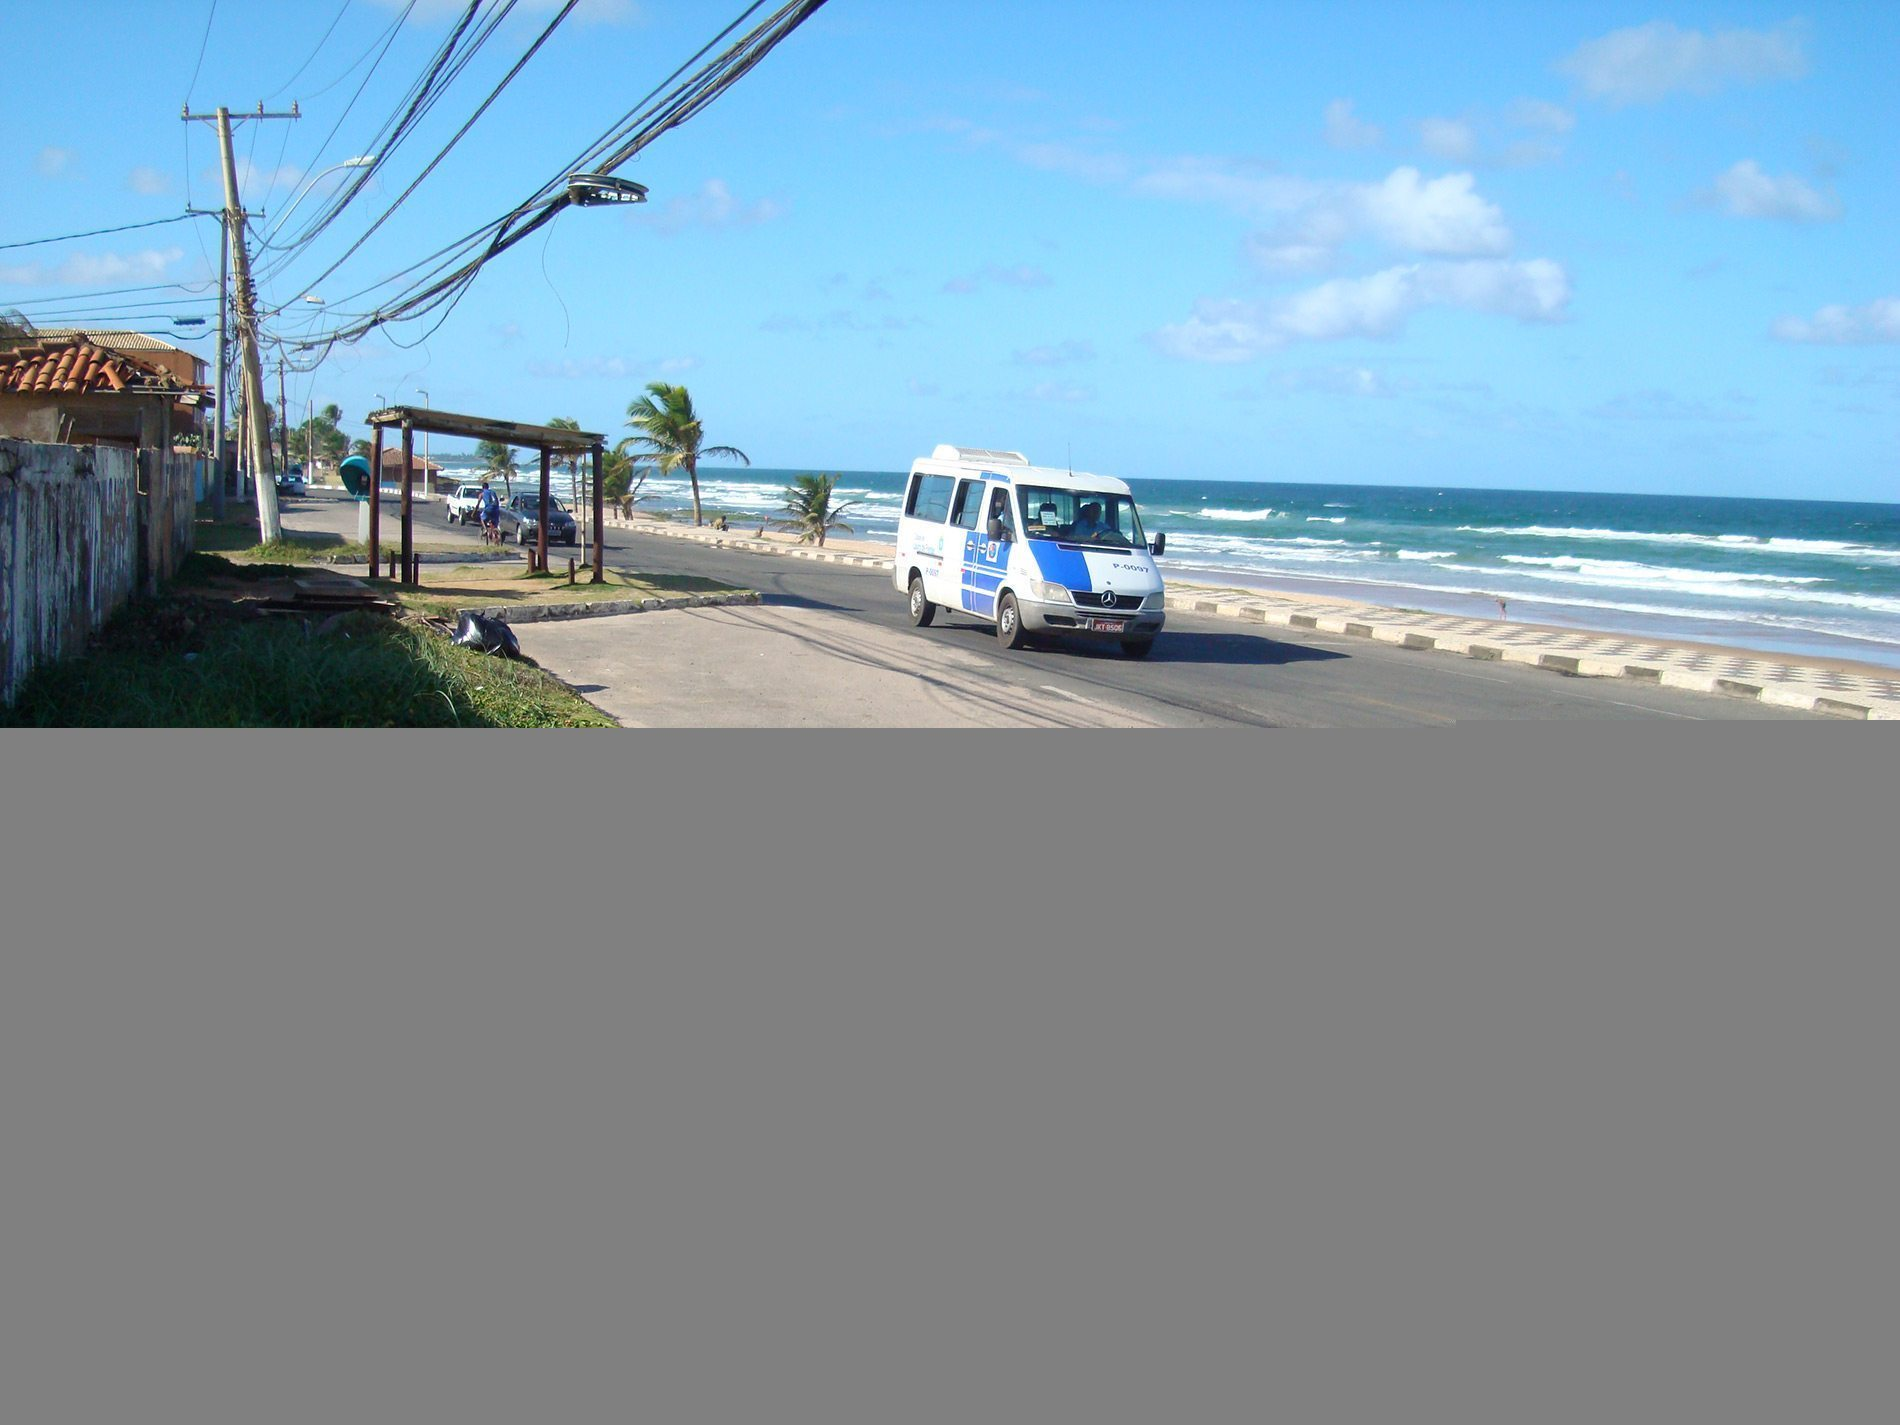 Land for sale in front of the beach Ipitanga